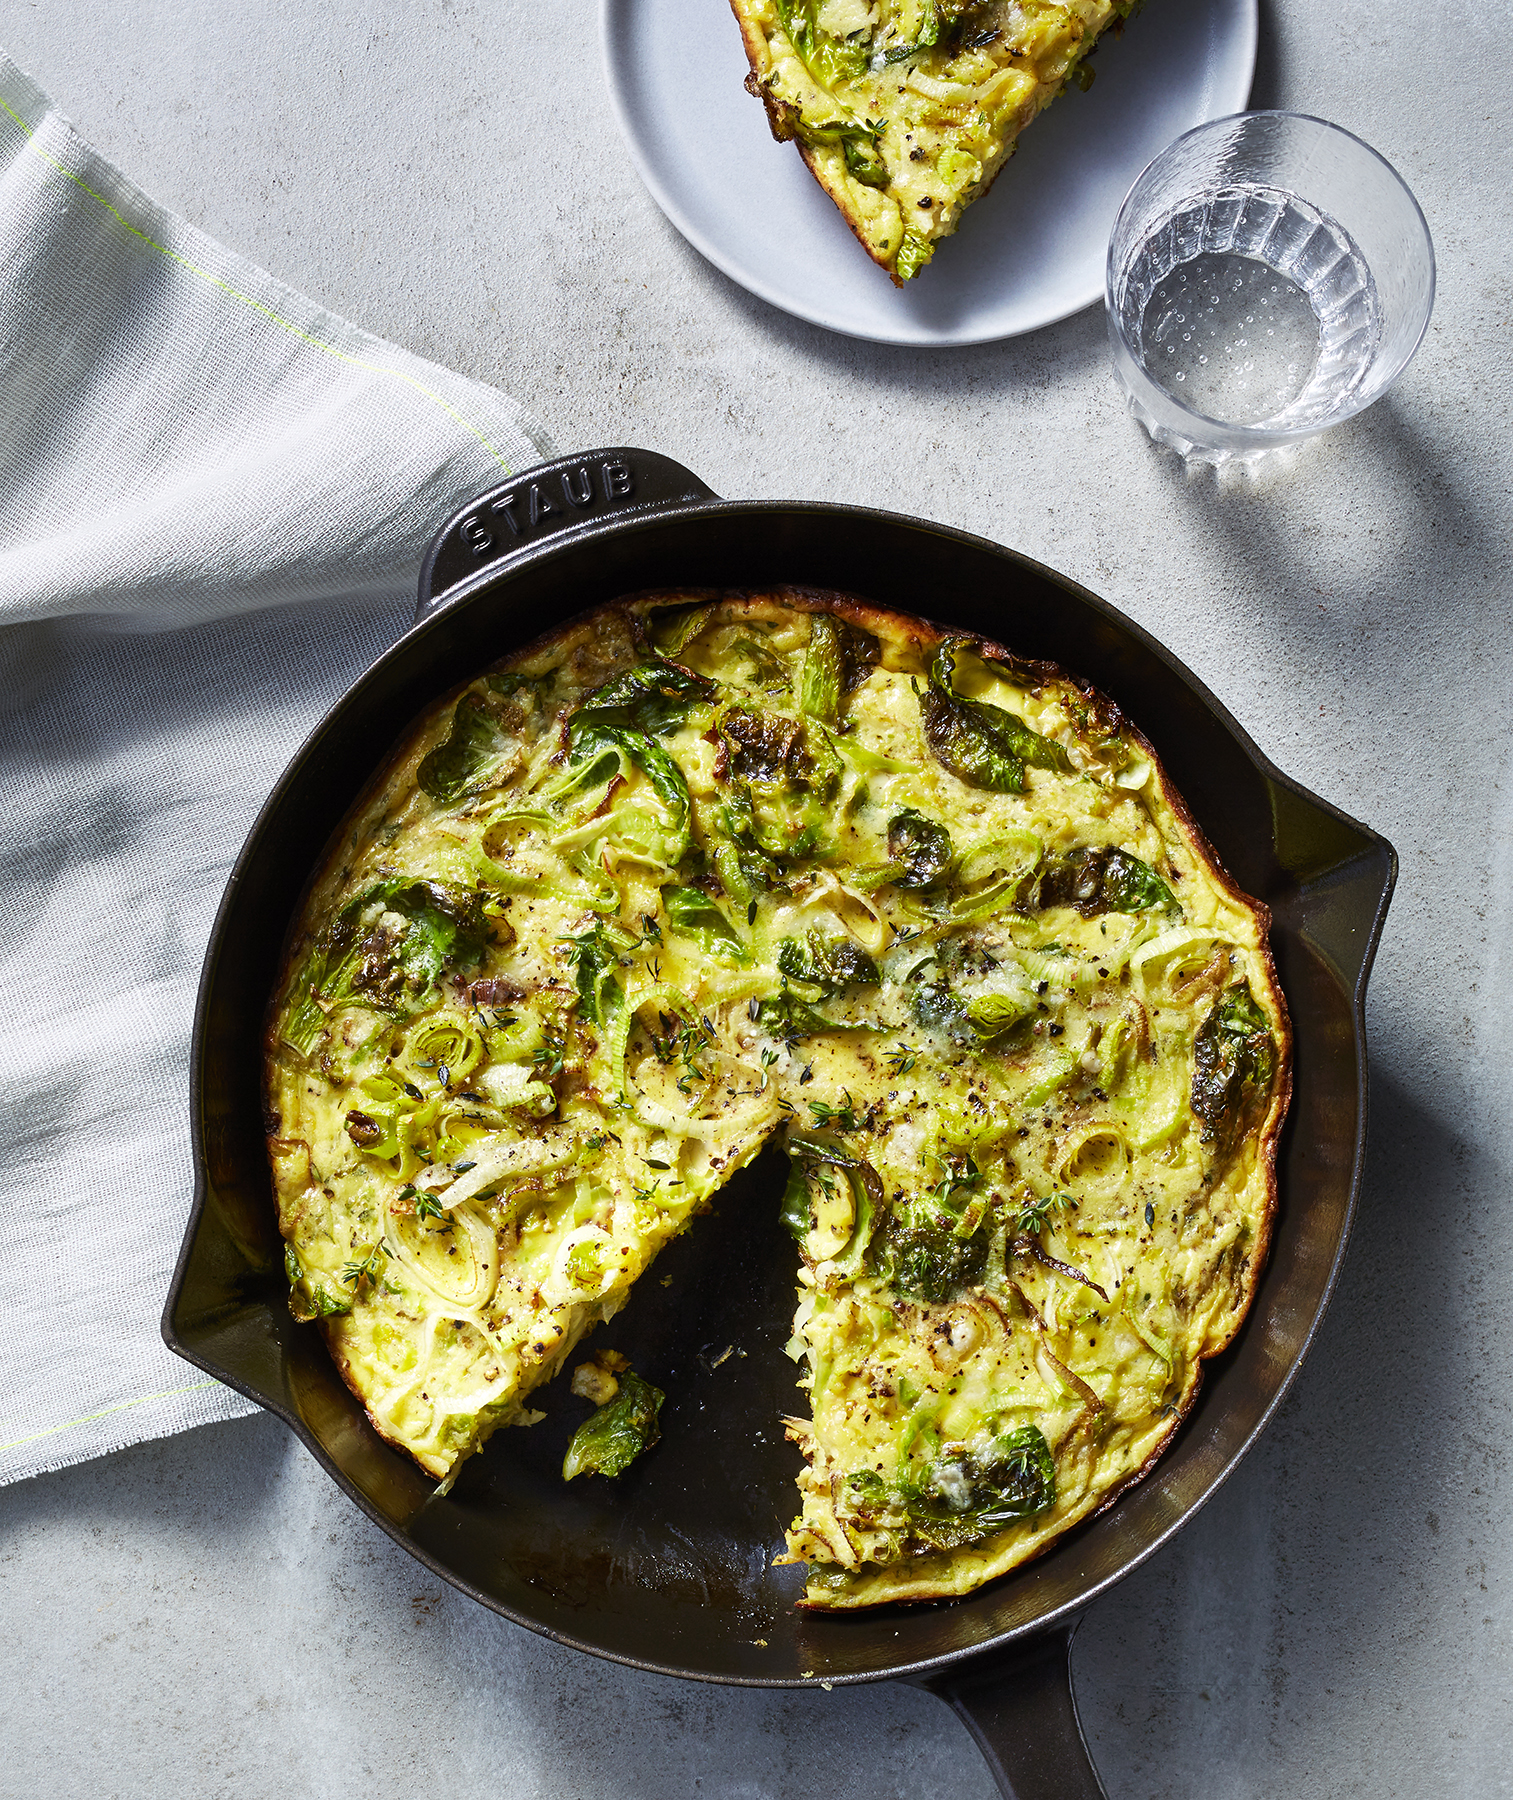 Garlic, Leek, and Brussels Sprouts Frittata